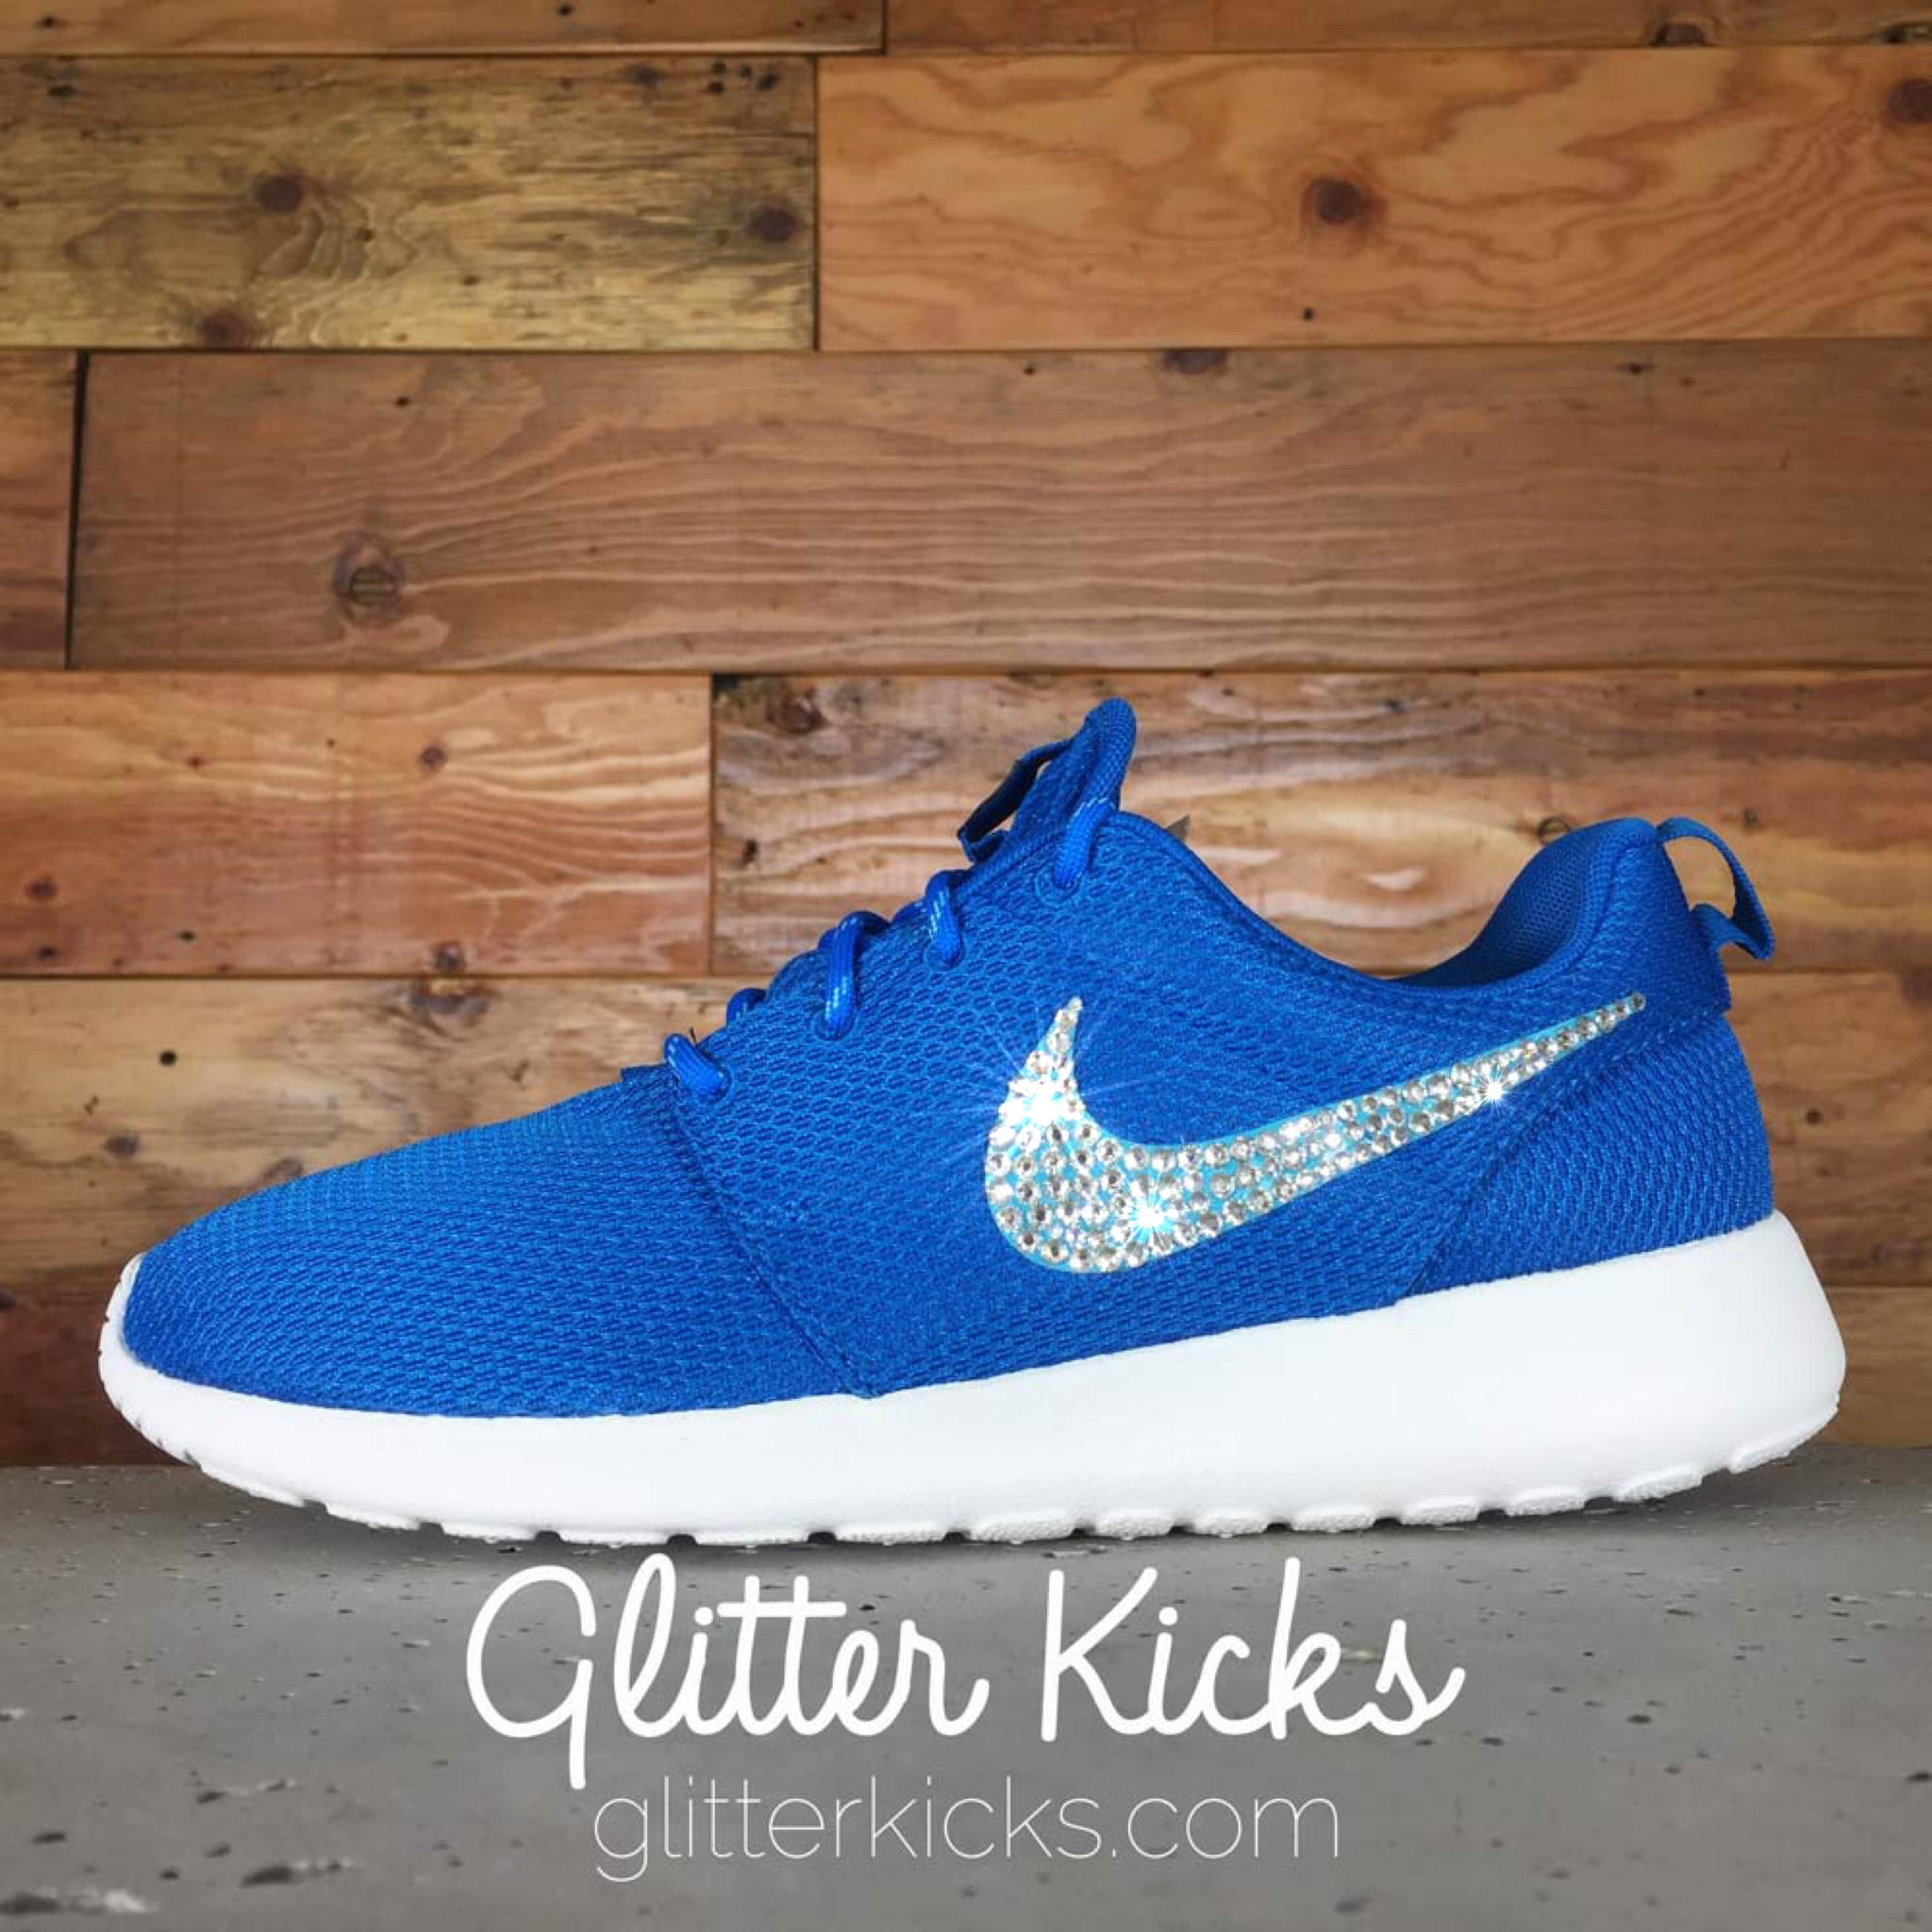 Nike Roshe One Customized by Glitter from Glitter Kicks  4be44eea8e